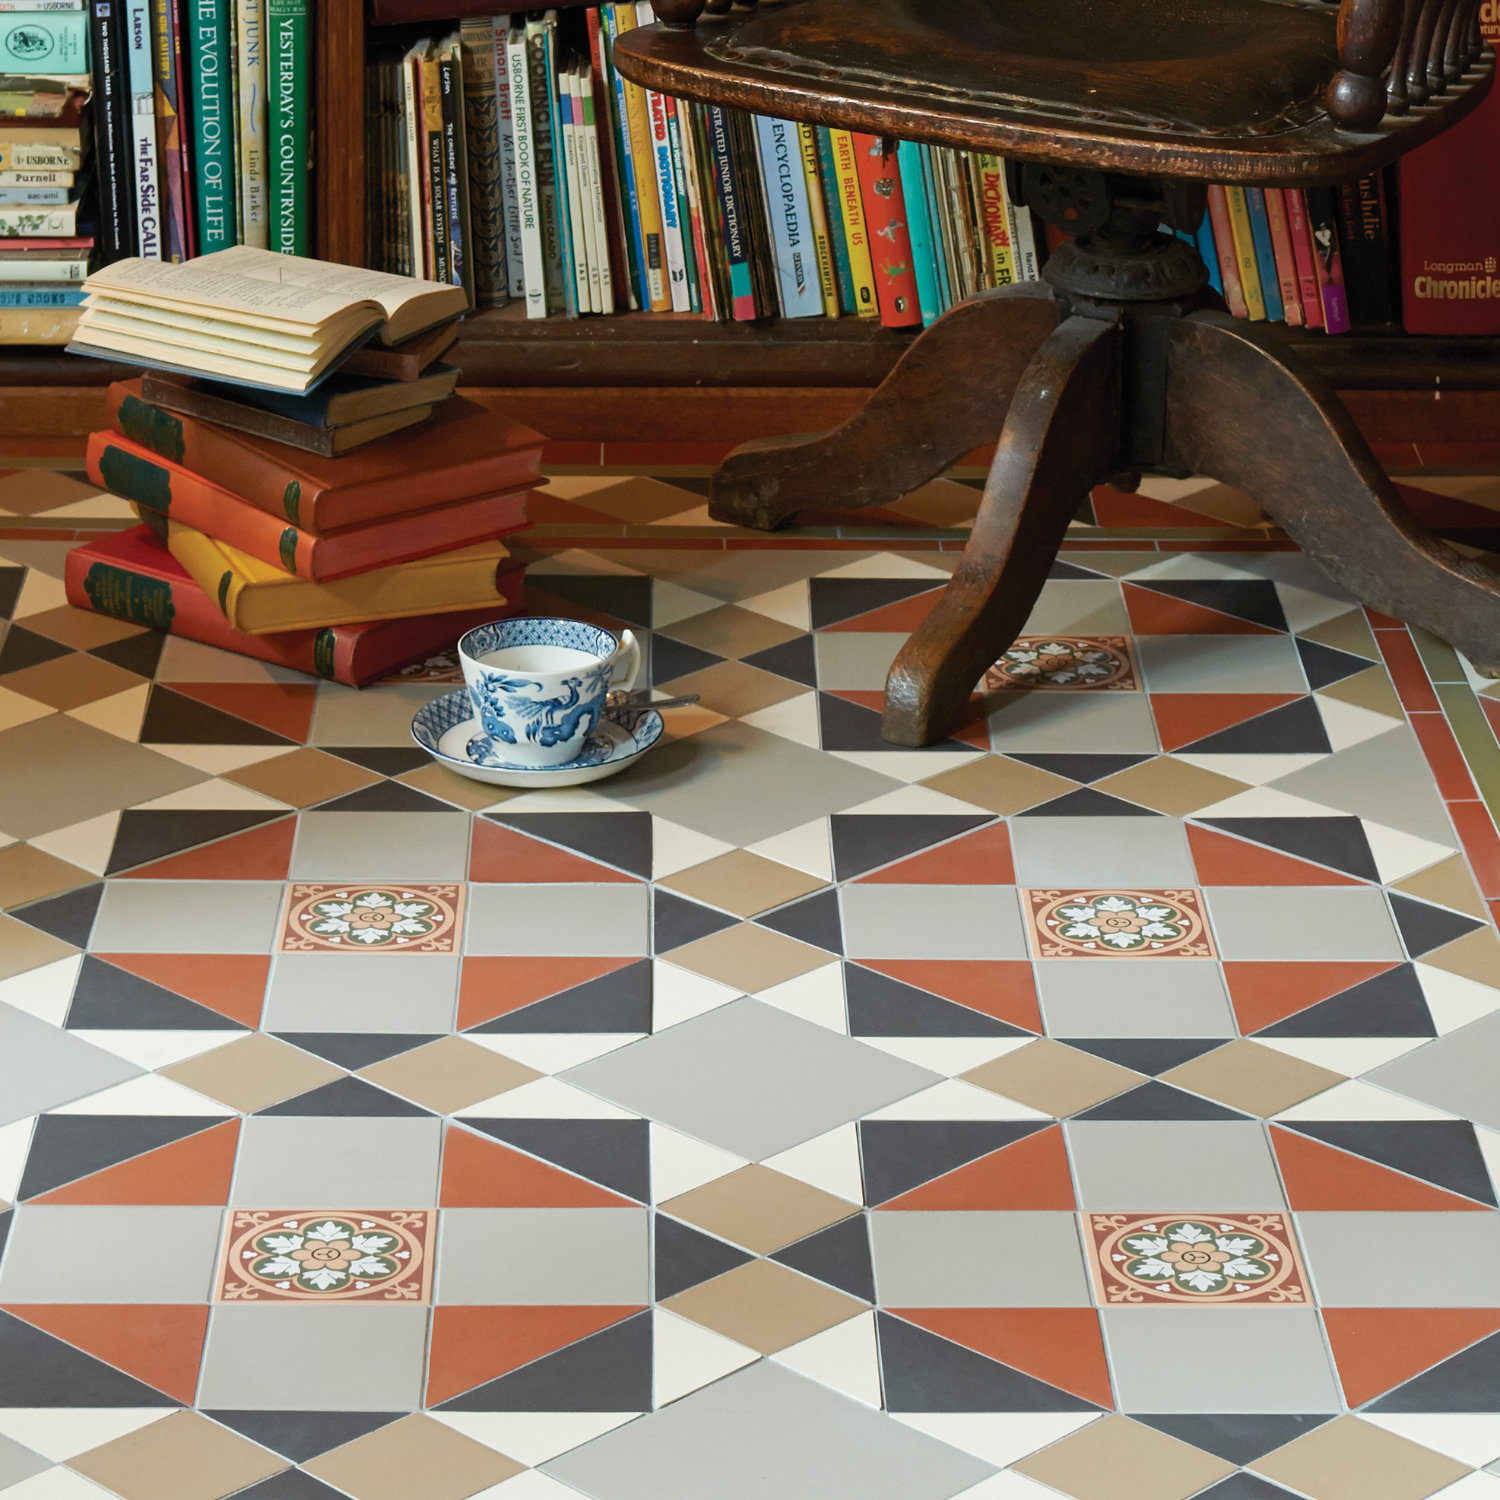 Os victorian floor ceramic tiles original style vft rochester pattern with wilde border with in red green dailygadgetfo Image collections